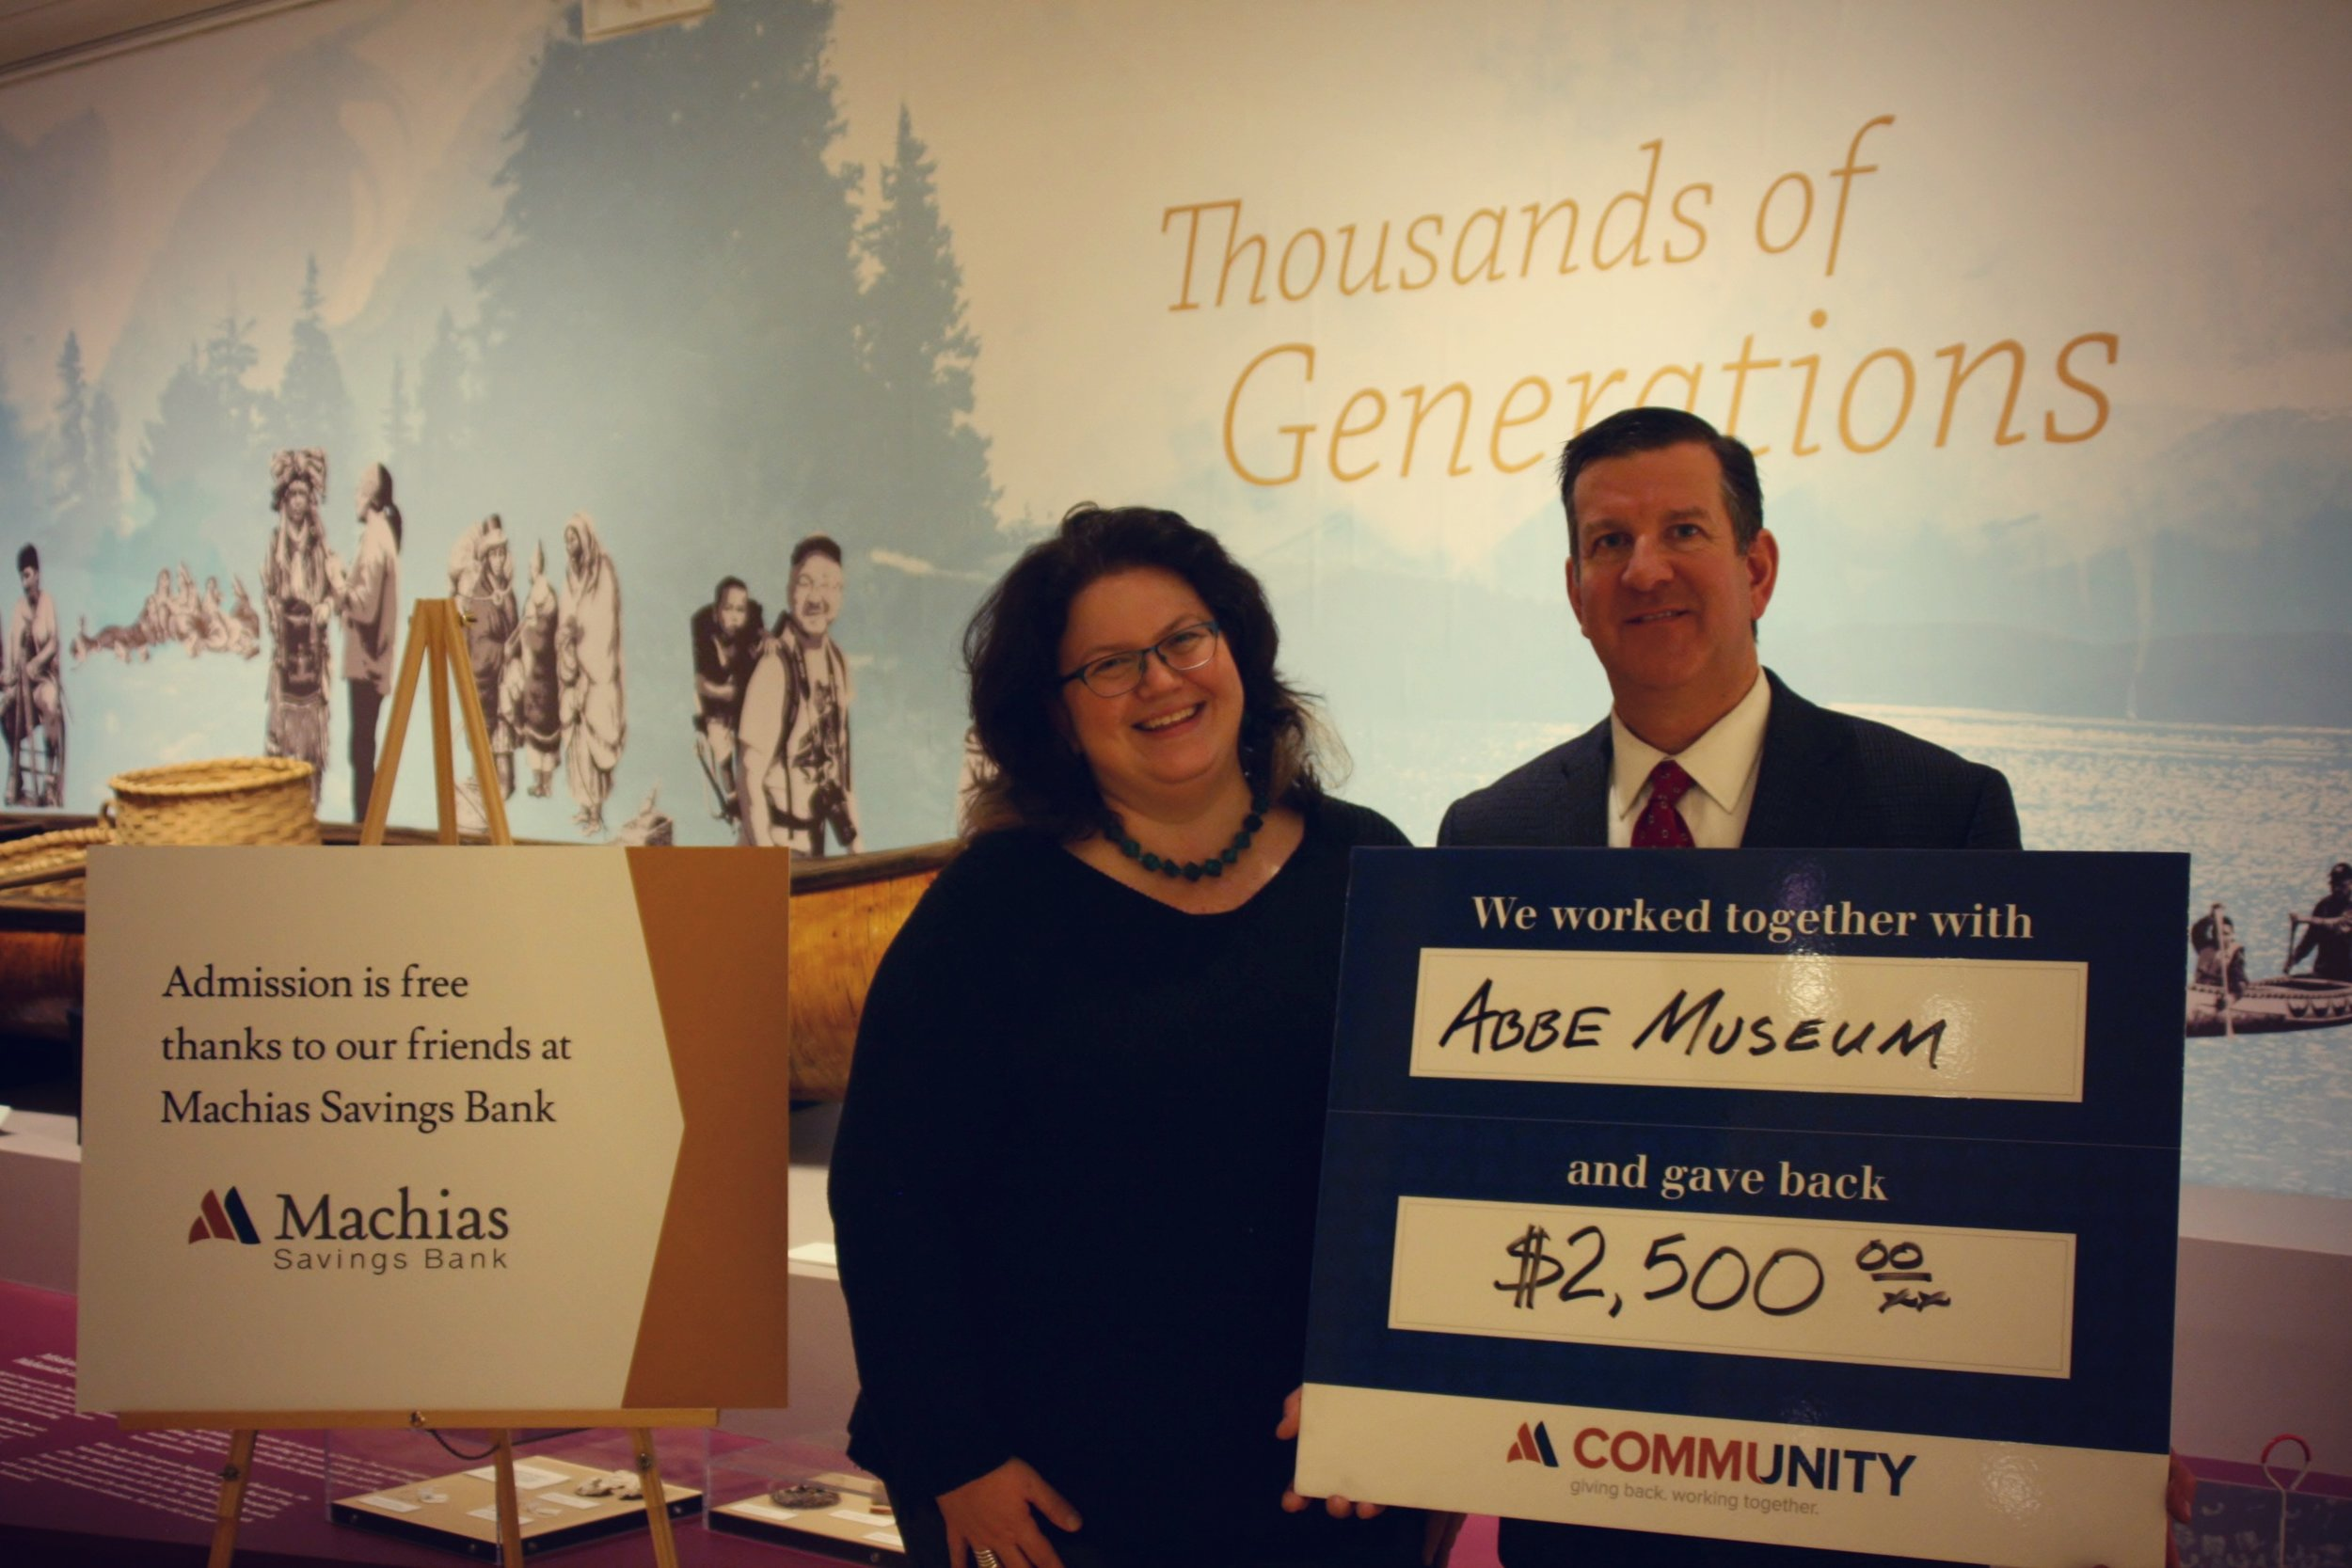 Machias Savings Bank Branch Manager Matt Horton presents Abbe Museum President and CEO Cinnamon Catlin-Legutko with a check in support of the Abbe's free admission program